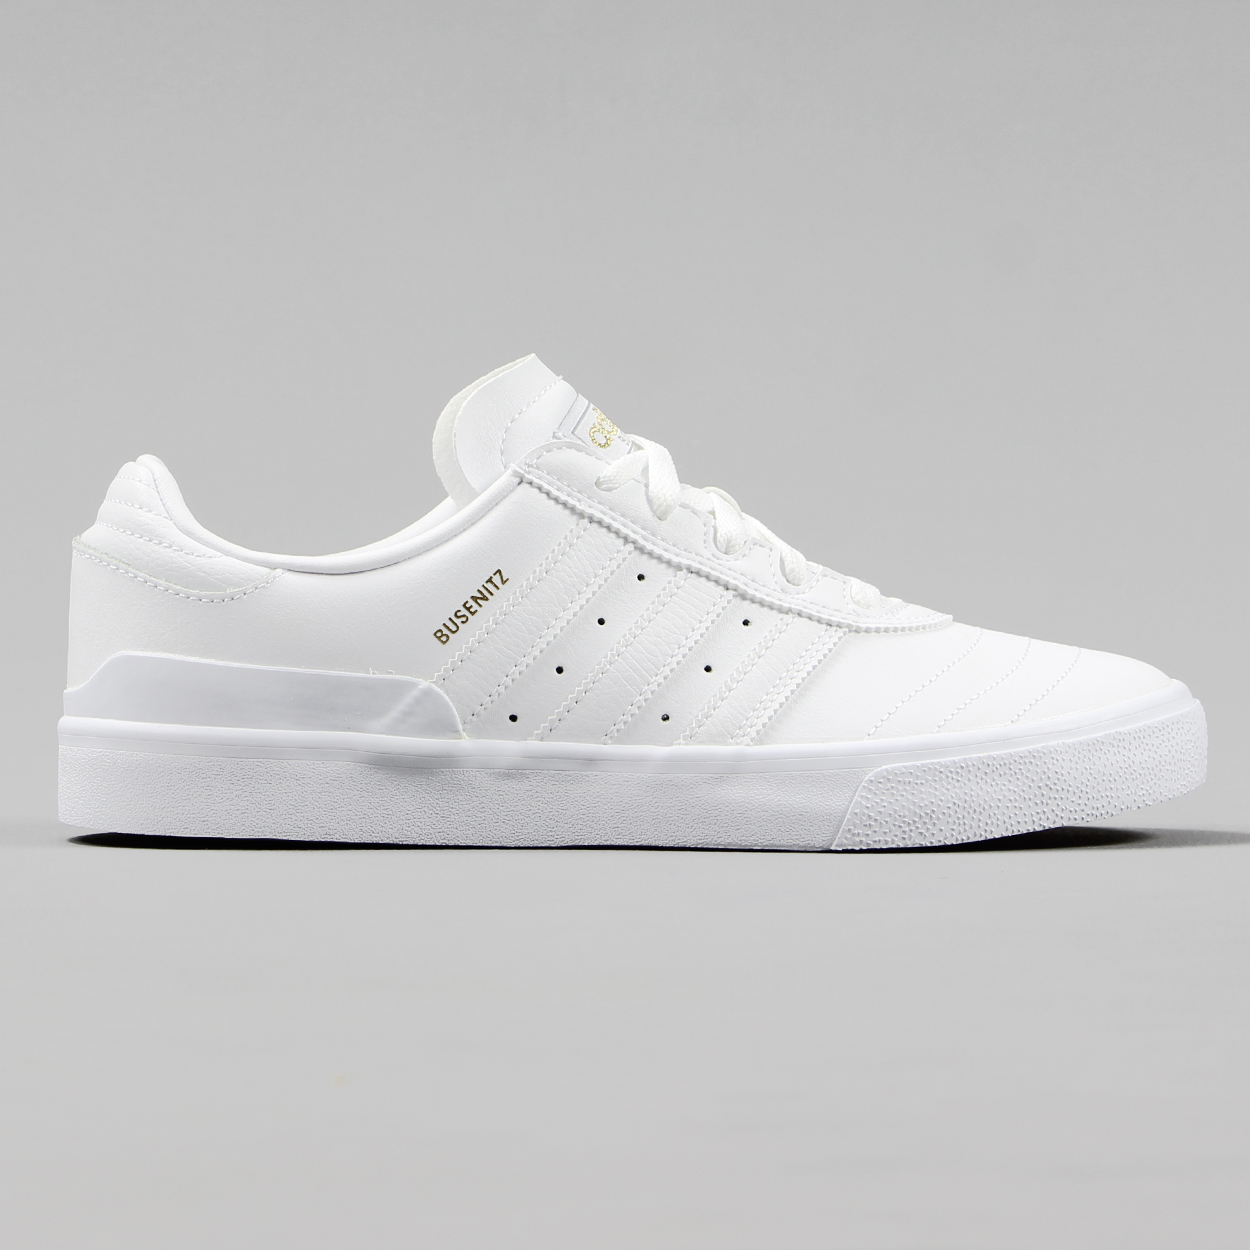 f9714dceb Adidas Mens Skateboarding Busenitz Vulc Shoes Triple White Gold £42.75